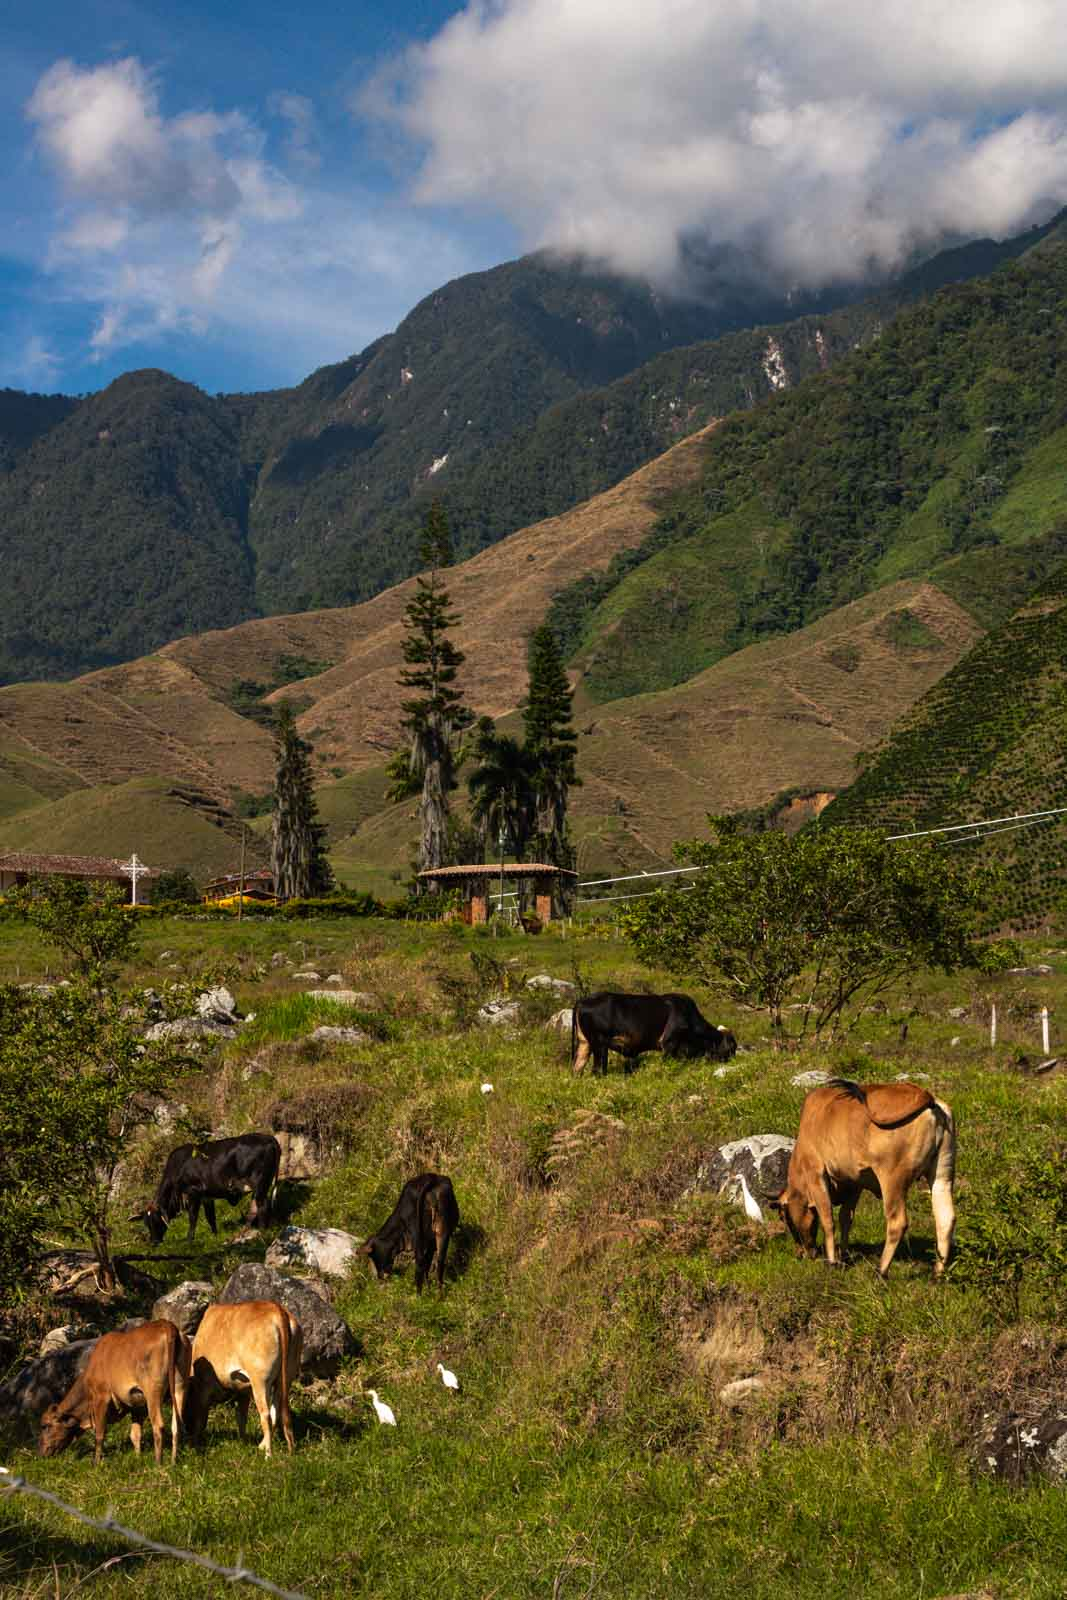 Cows in Jardin, Colombia.